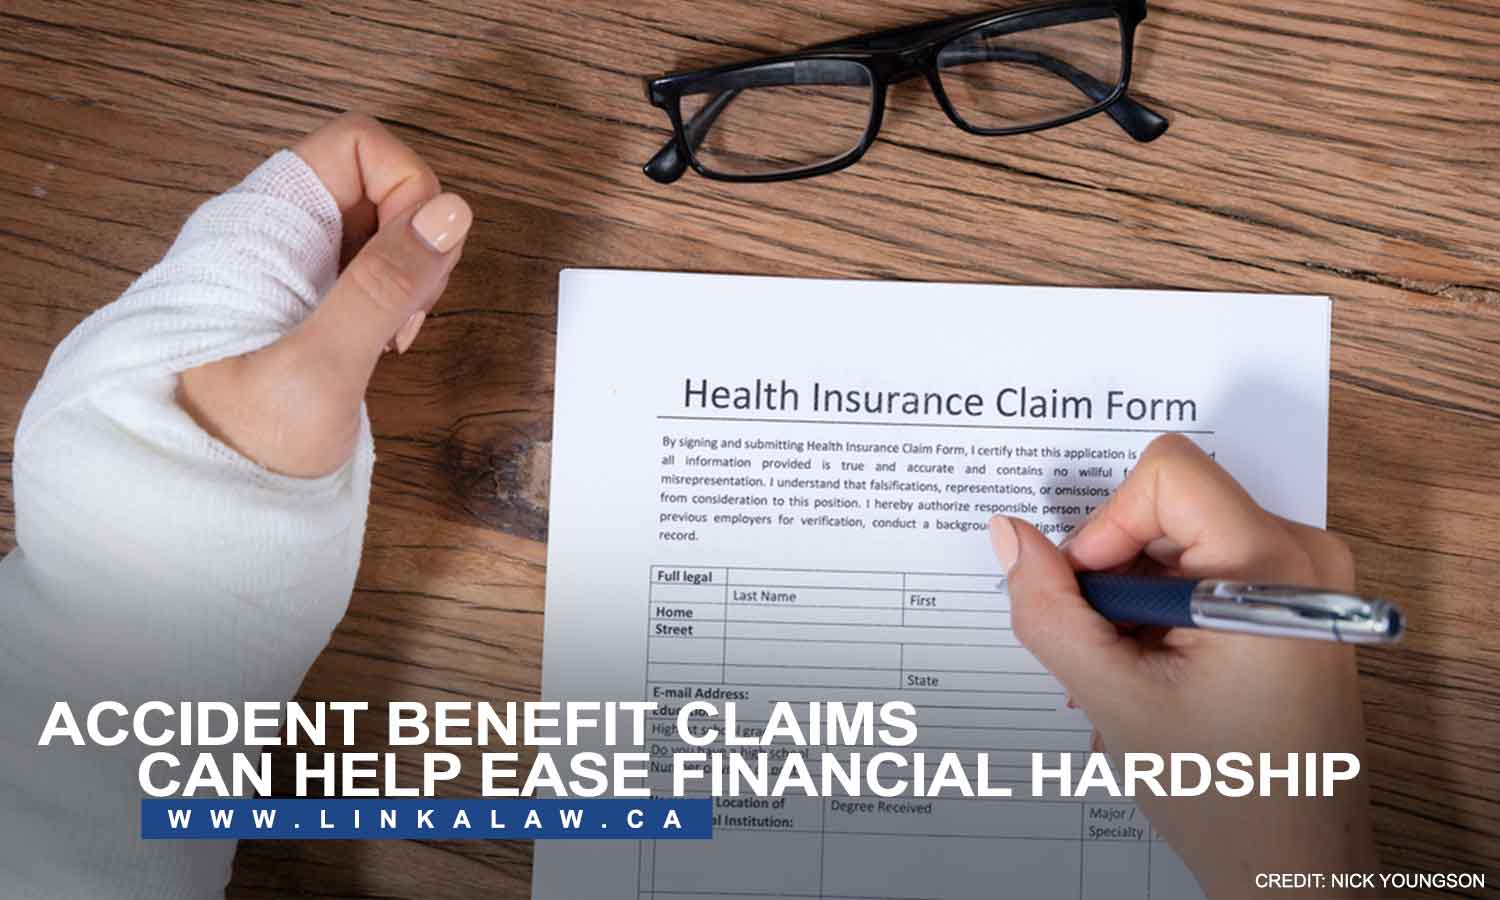 Accident benefit claims can help ease financial hardship